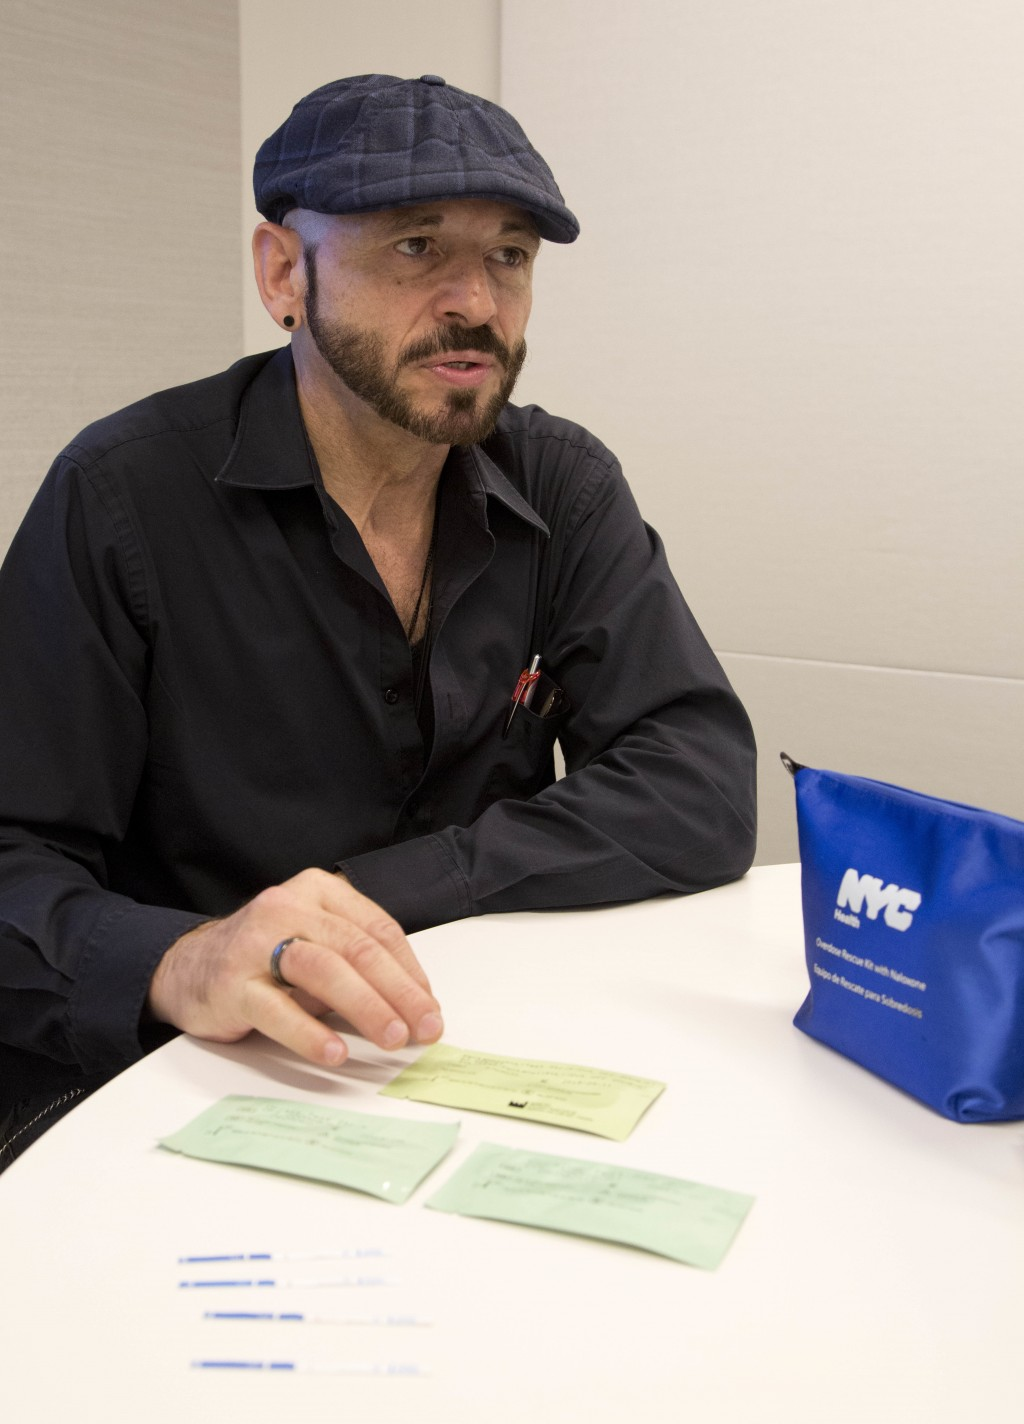 Tino Fuentes, a former heroin user and drug dealer, who is now an advocate for fentanyl test strips, talks during an interview in New York on May 10,